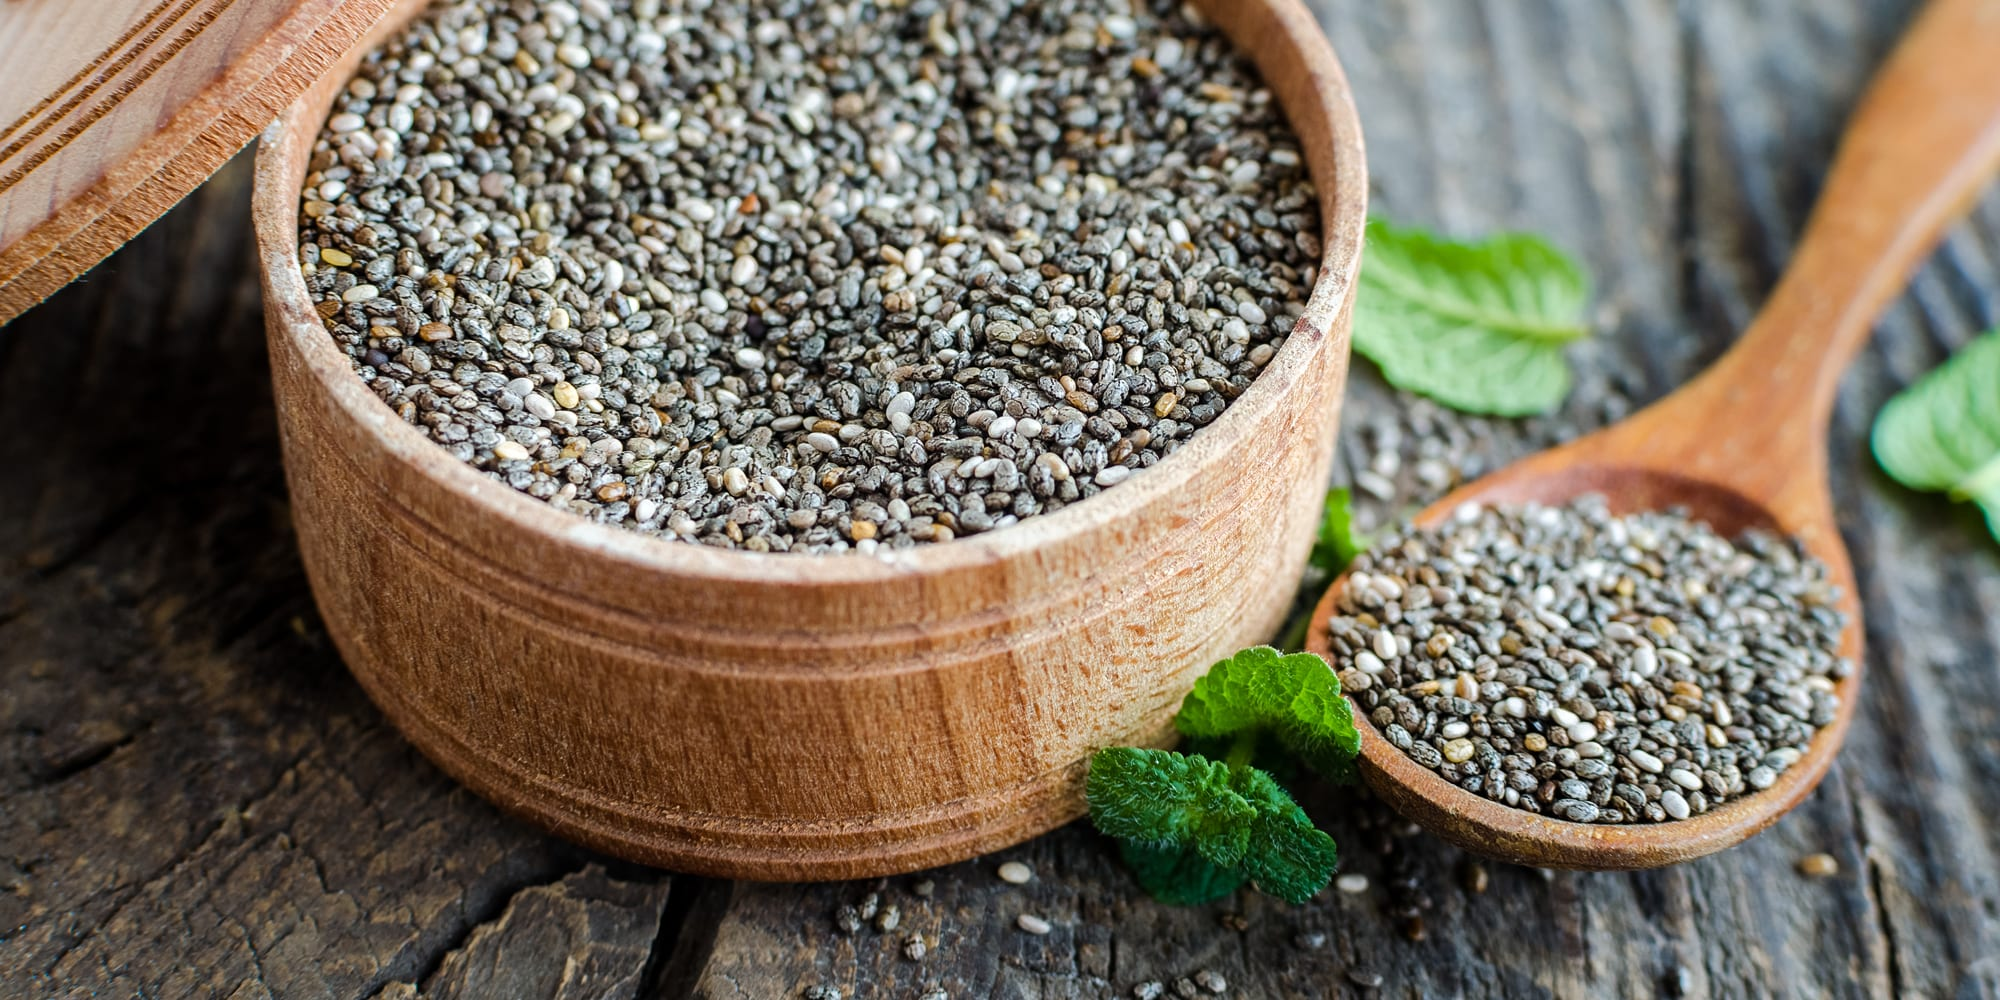 Do Chia Seeds Really Help With Weight Loss?